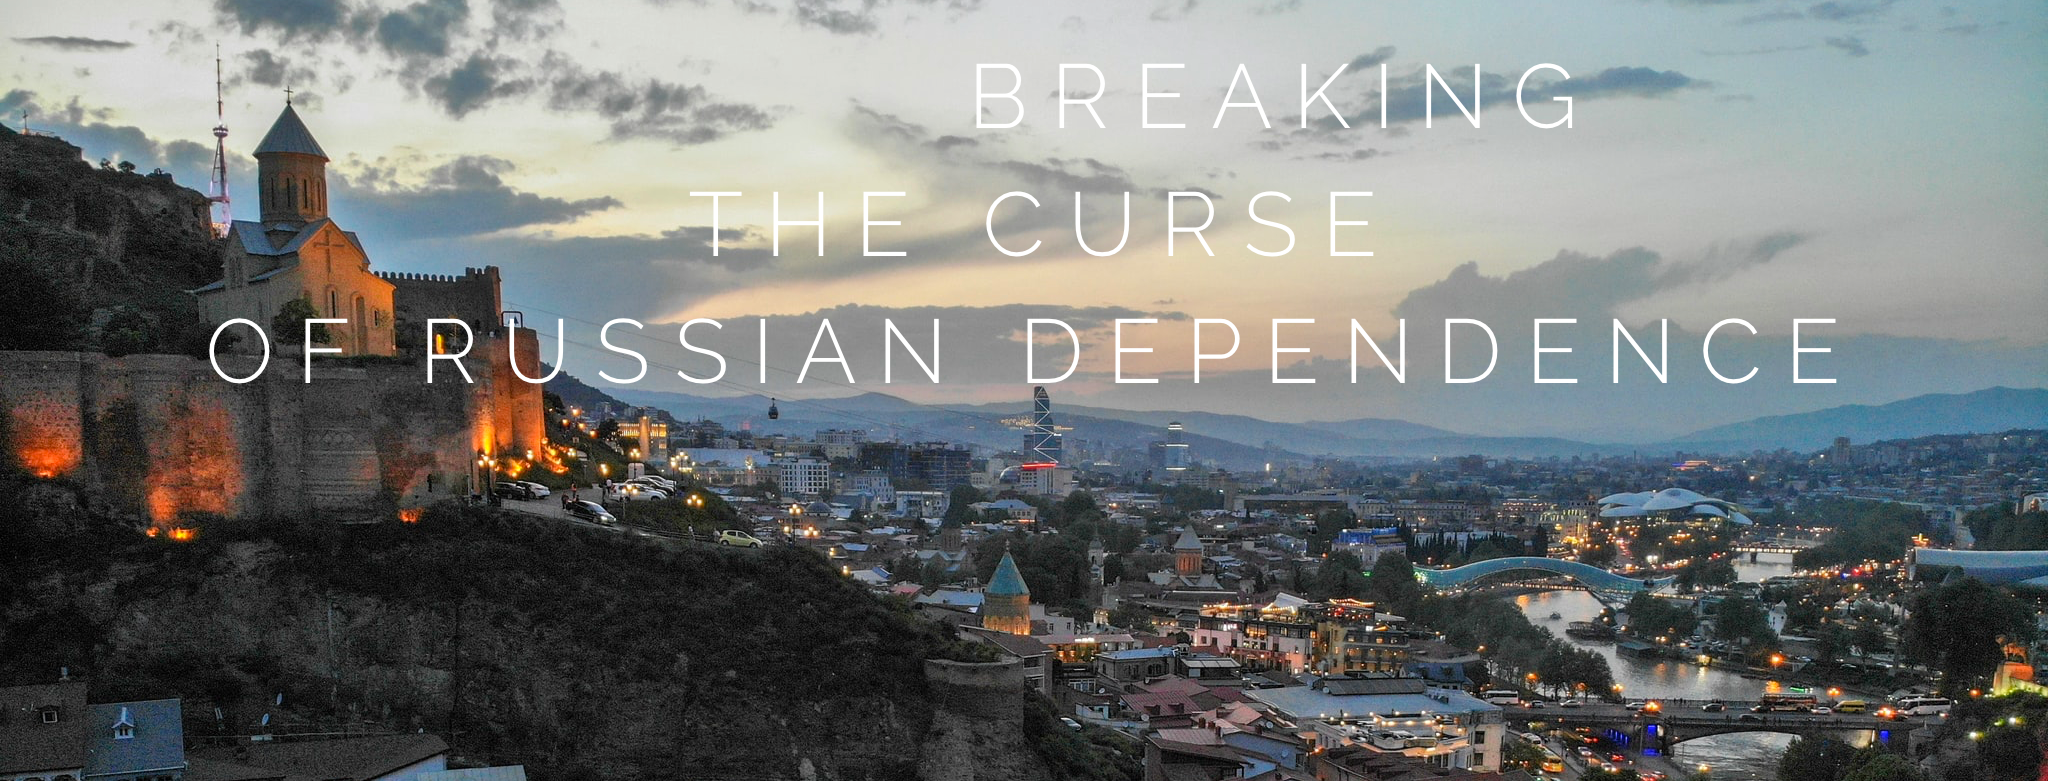 Georgia: How to break the curse of Russian dependence?